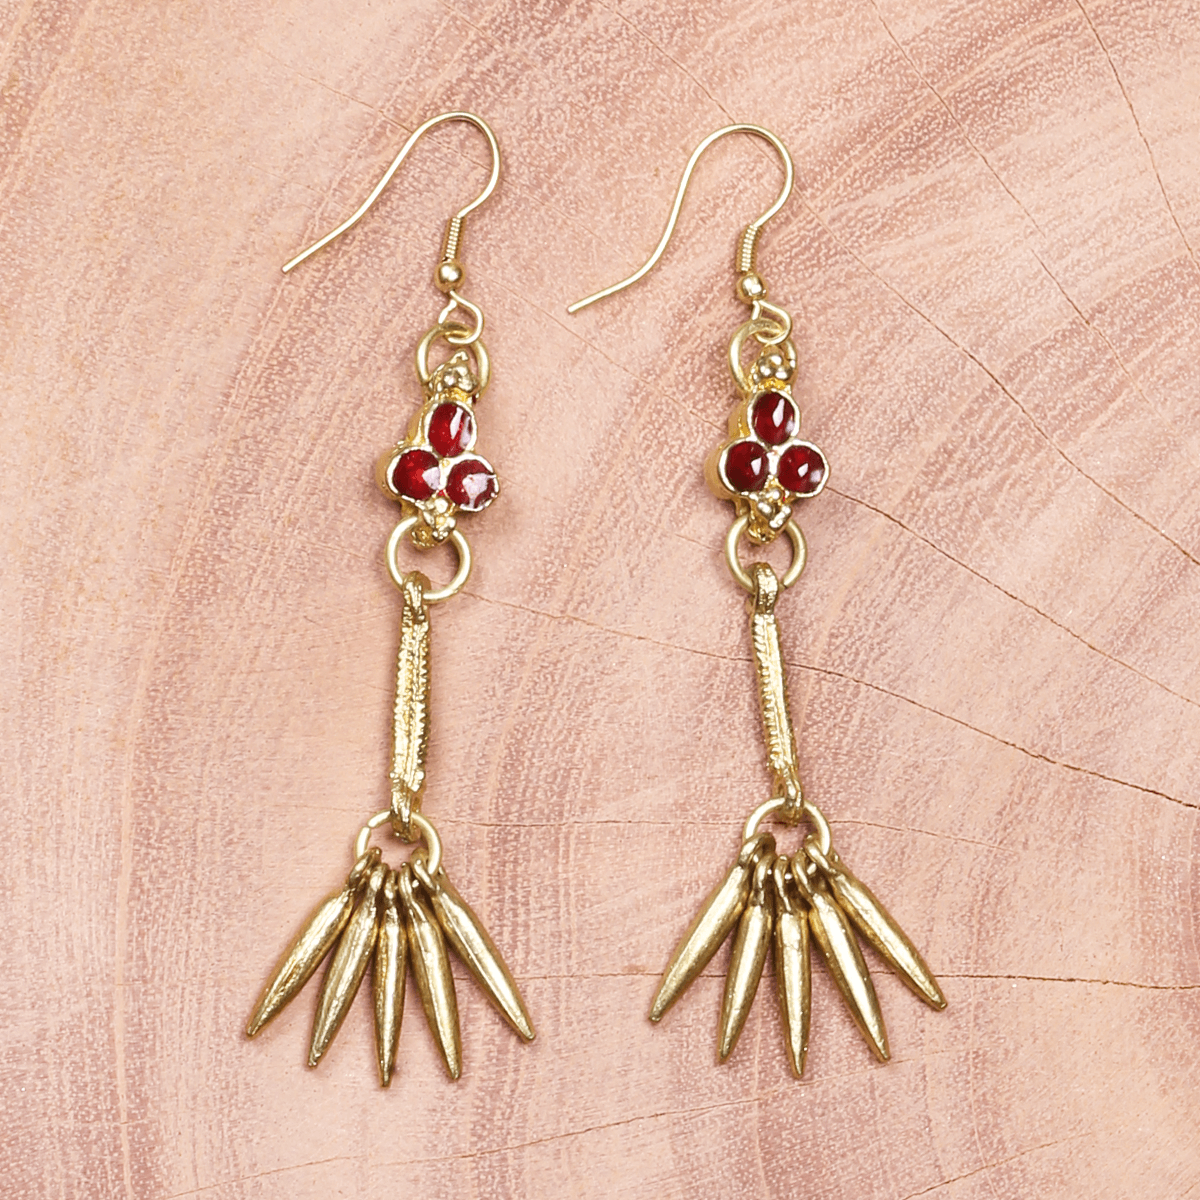 Bohemian Fashion Metal Earrings - Red